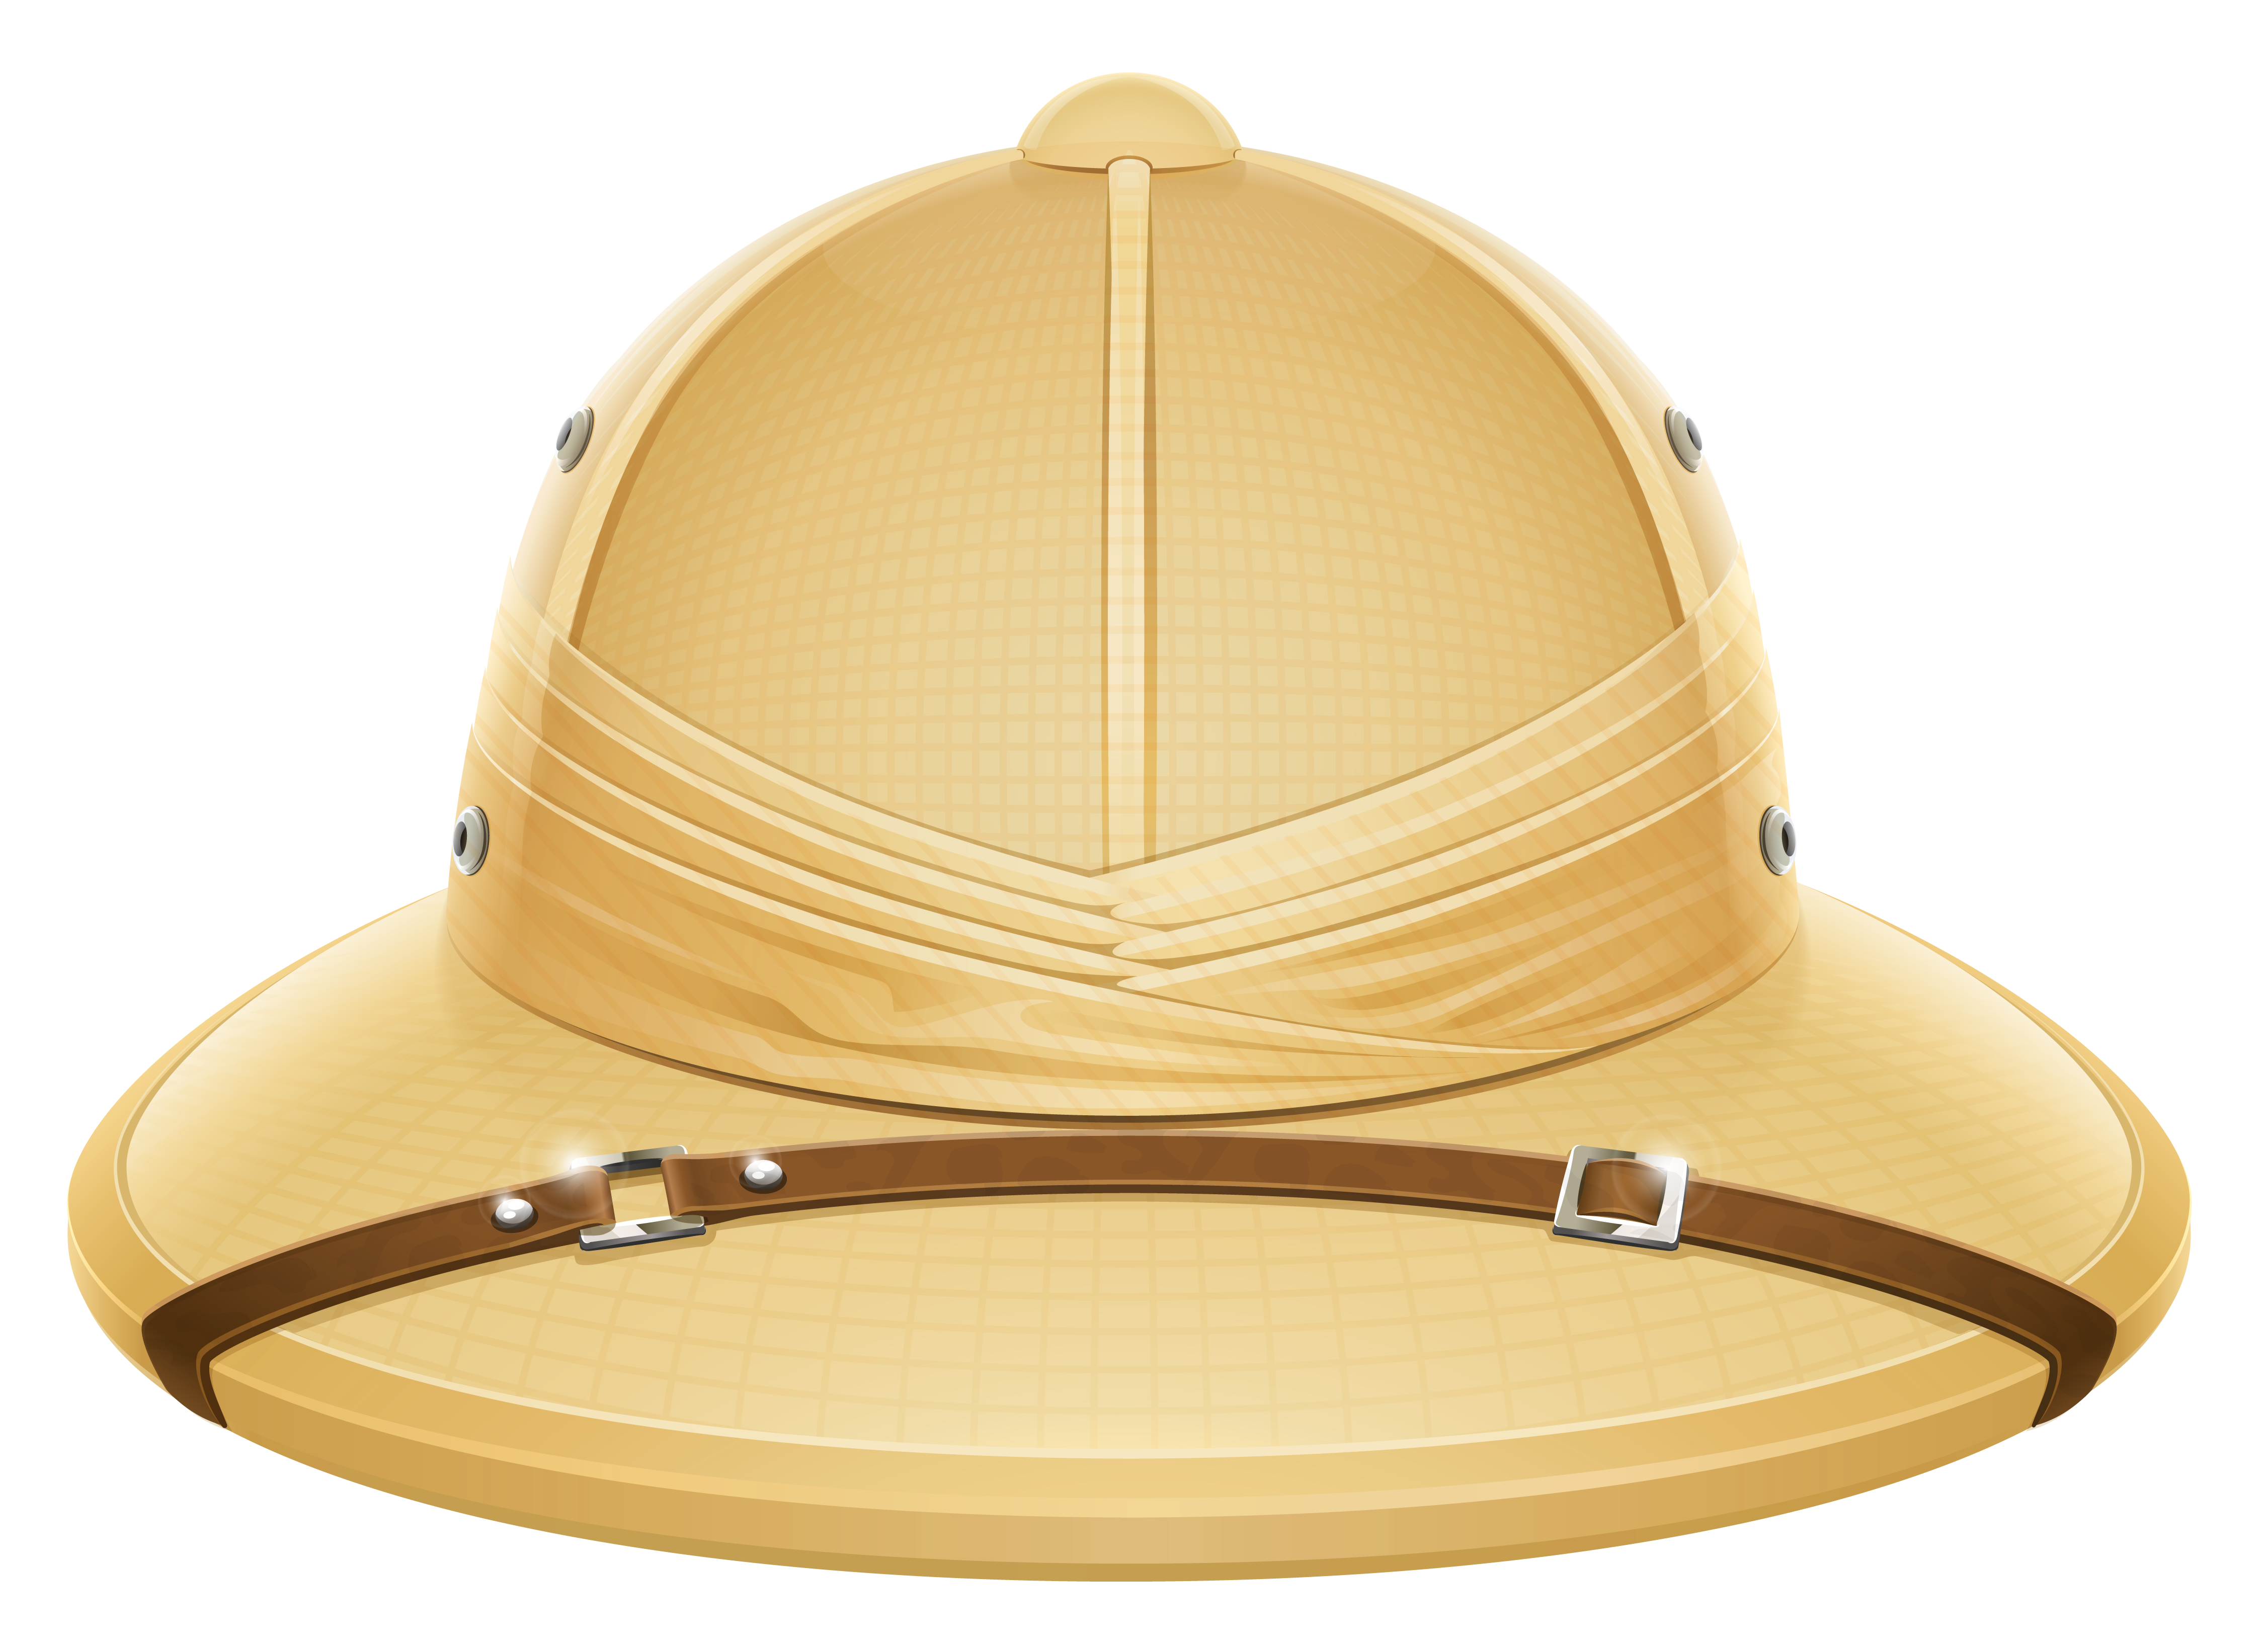 Pith helmet clipart svg royalty free library Pith Helmet PNG Cipart   Gallery Yopriceville - High ... svg royalty free library